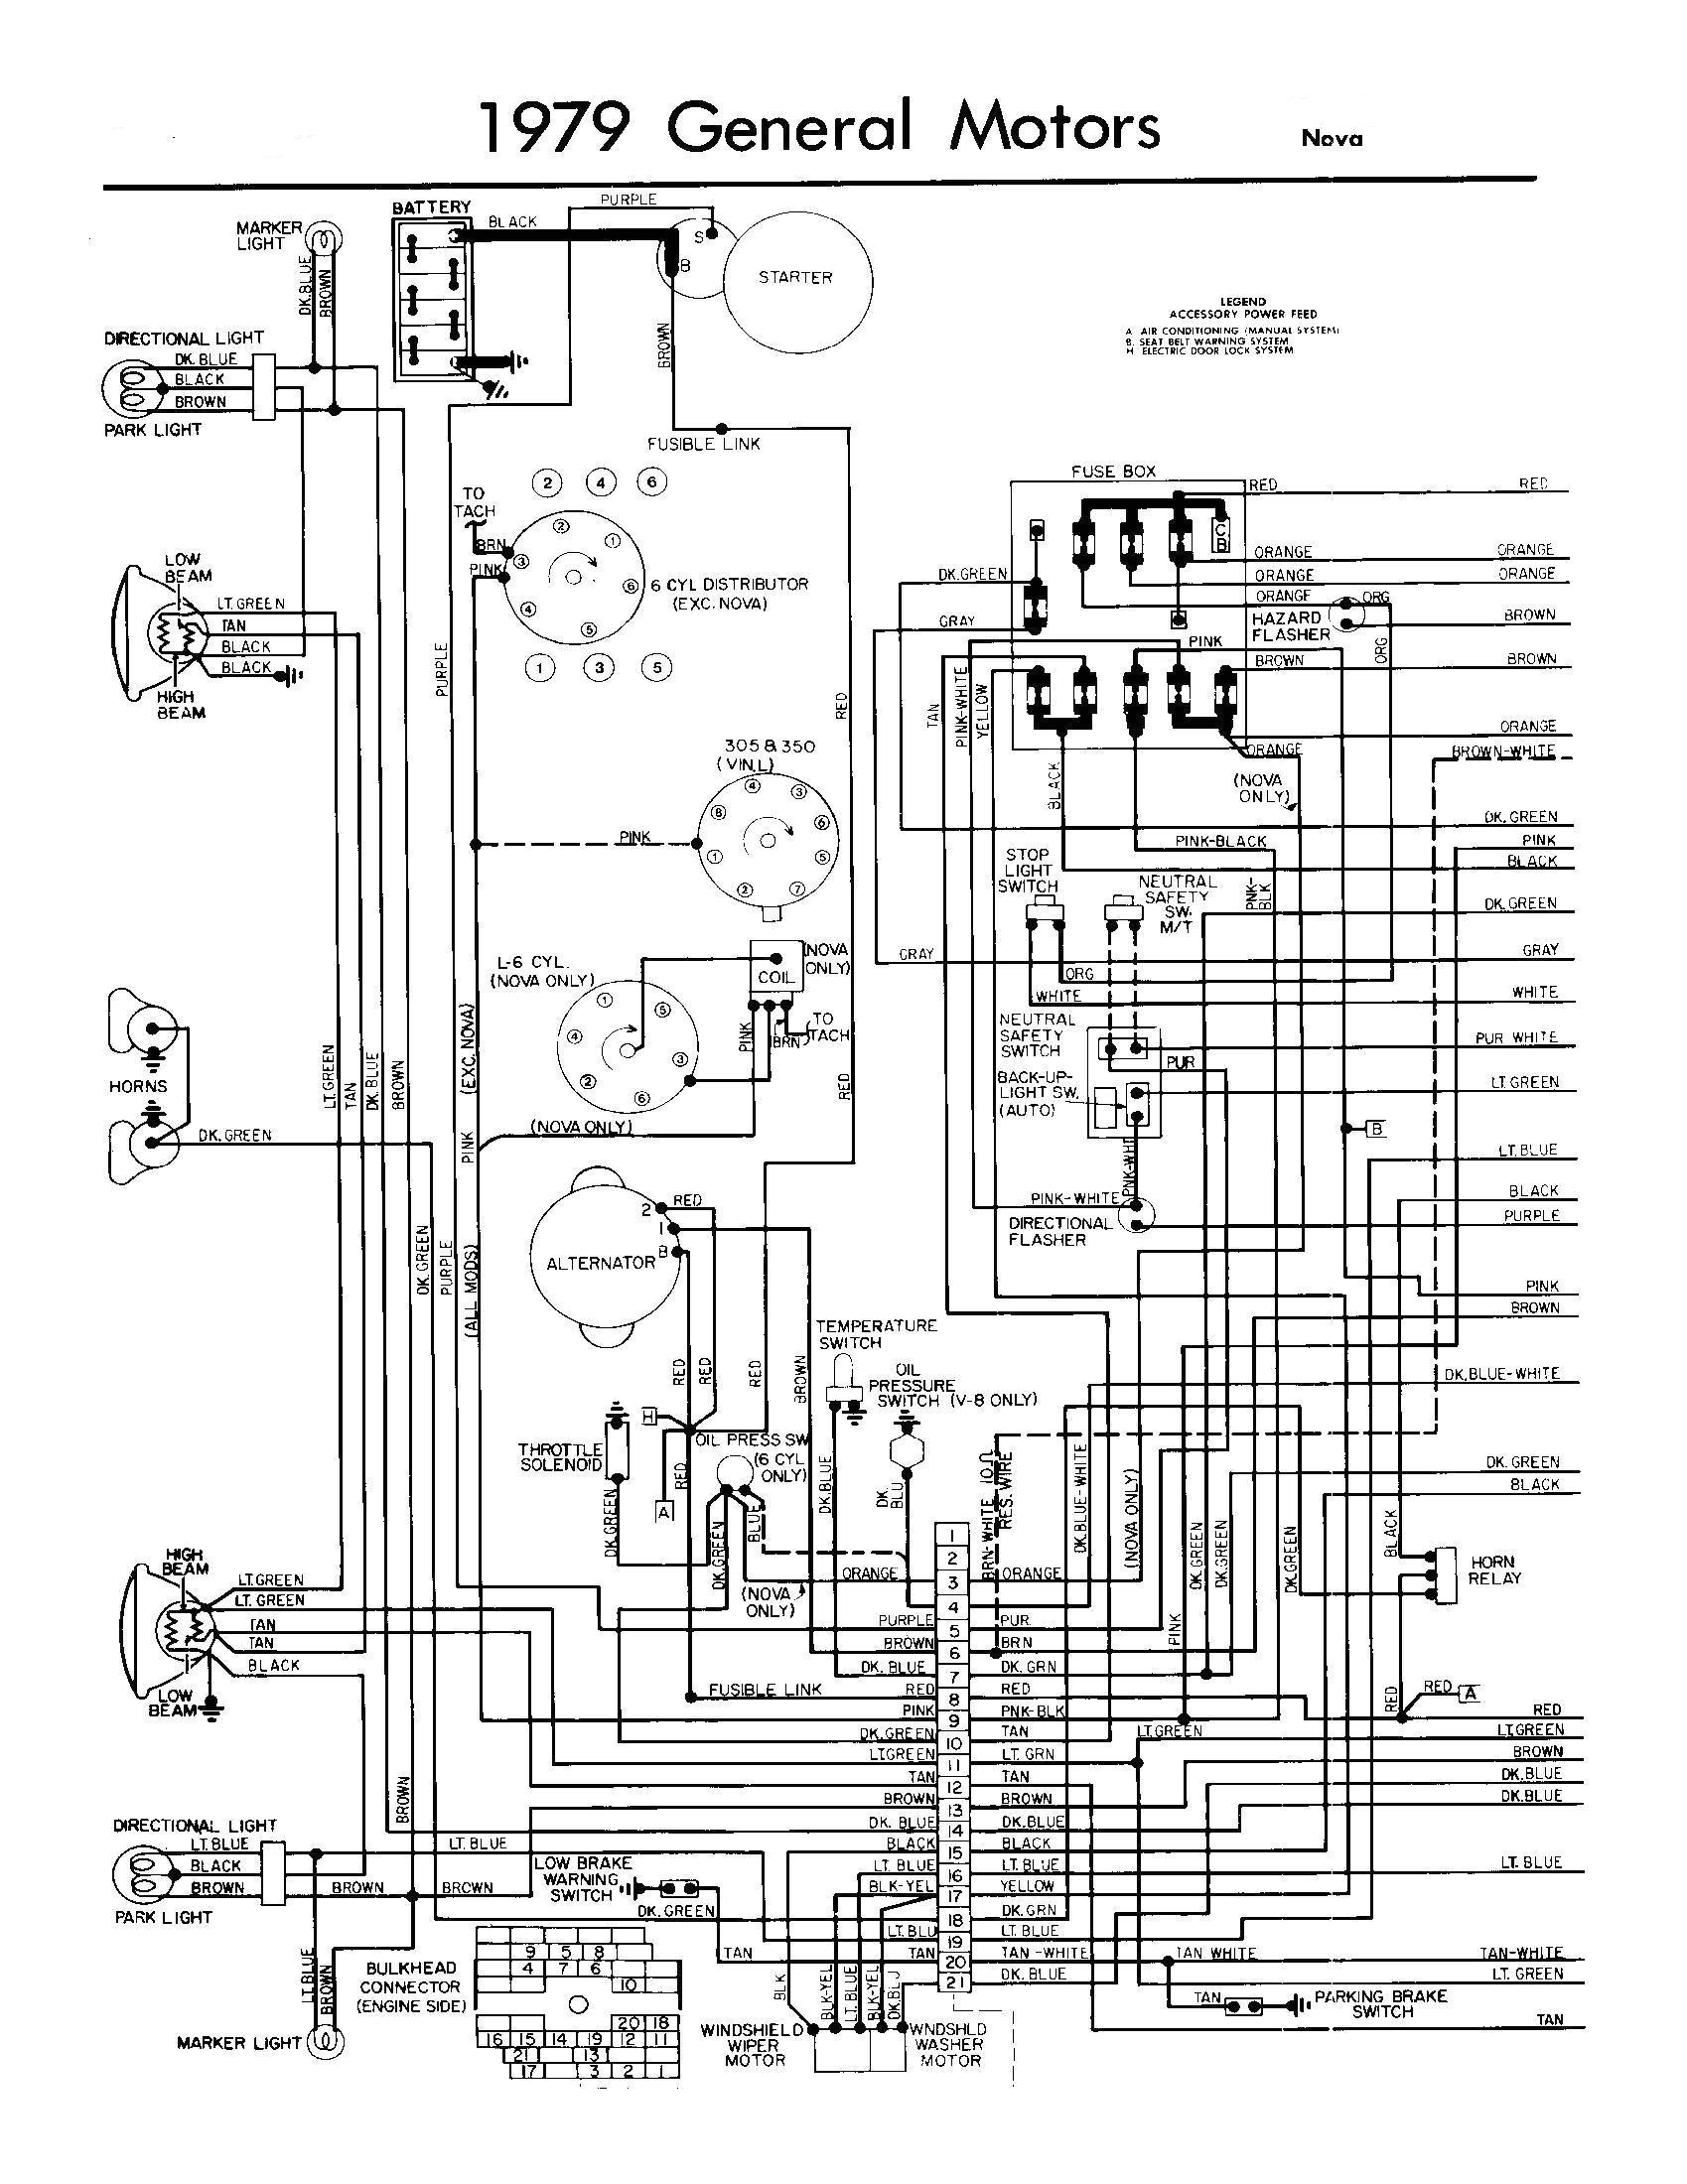 1982 chevy truck wiring diagram 1975 gmc truck wiring diagrams 1975 circuit diagrams init e280a2 of 1982 chevy truck wiring diagram jpg